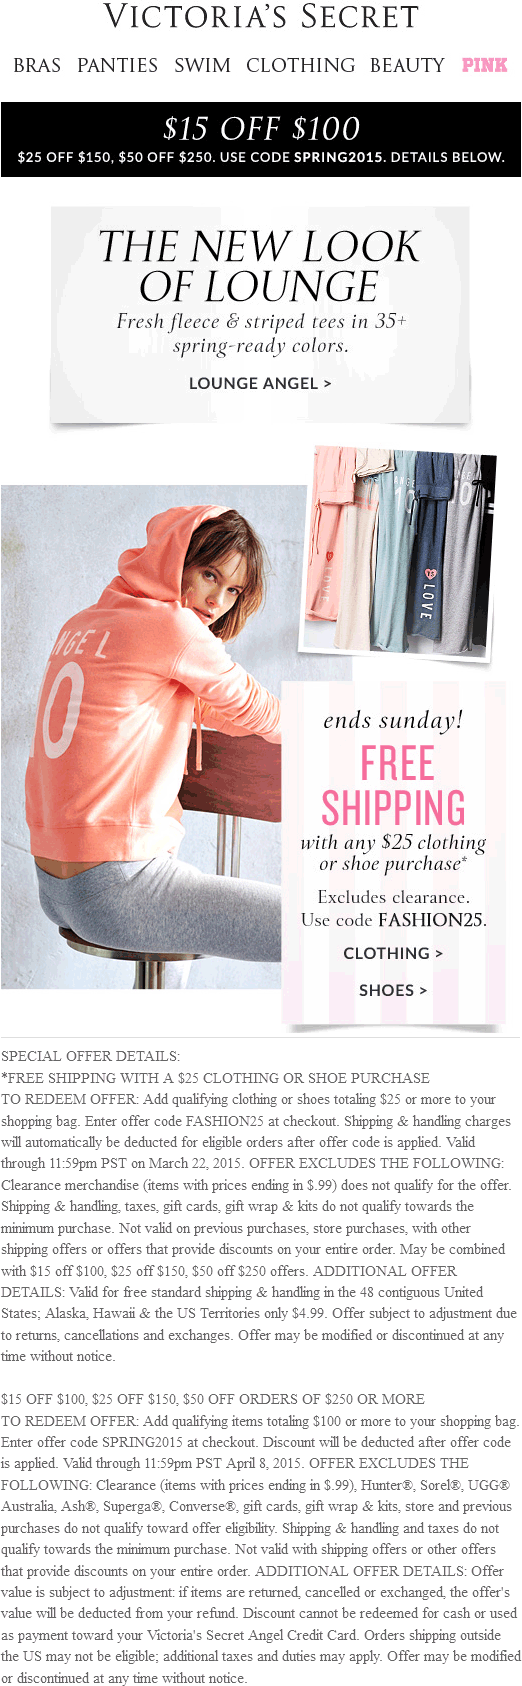 Victorias Secret Coupon September 2017 $15-$50 off $100+ at Victorias Secret, or online via promo code SPRING2015